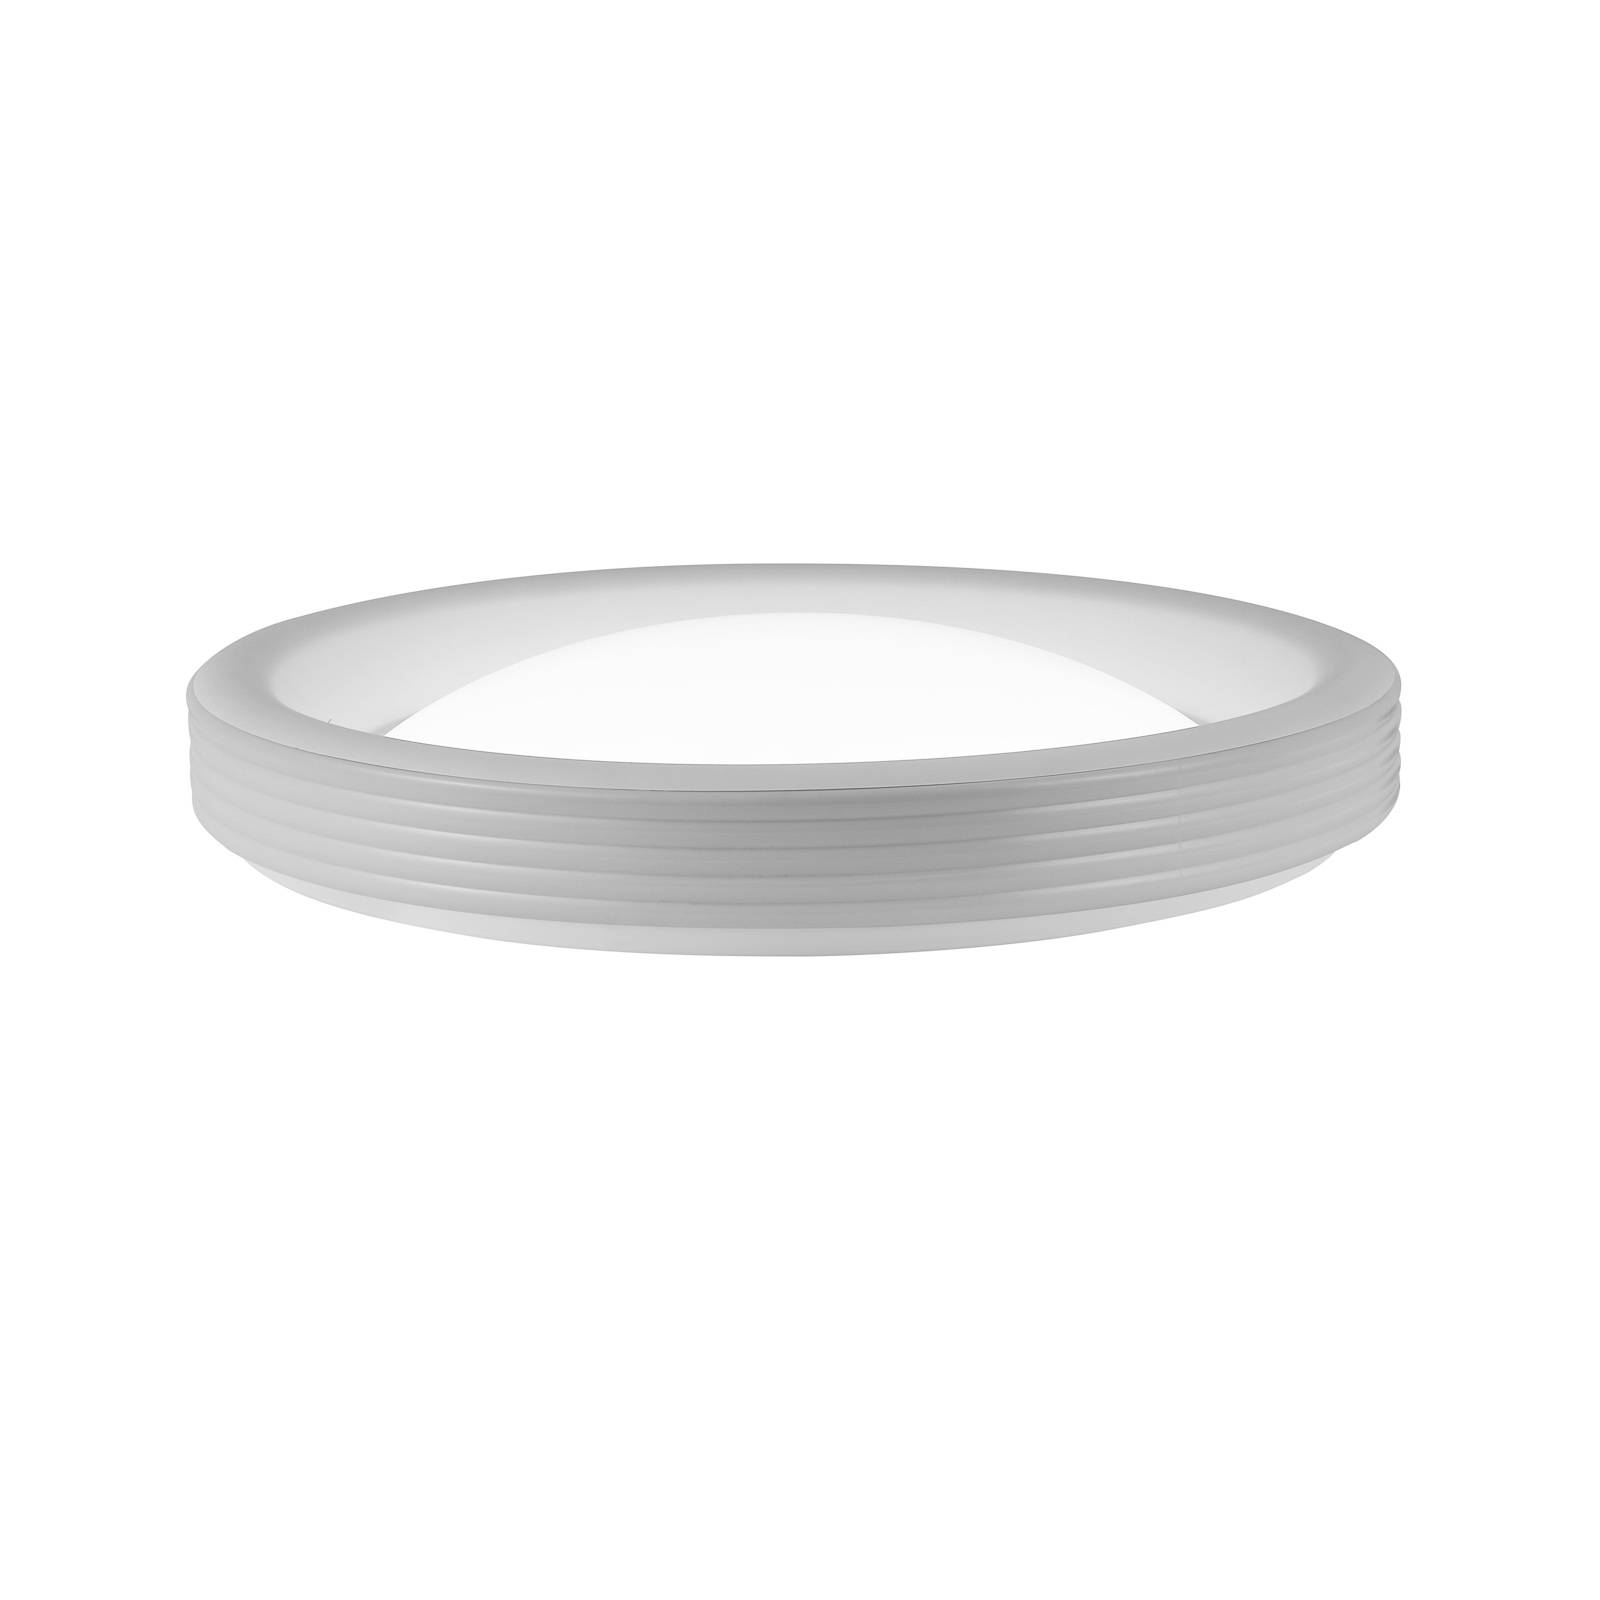 Lindby Inarum plafonnier LED, RVB, CCT, dimmable